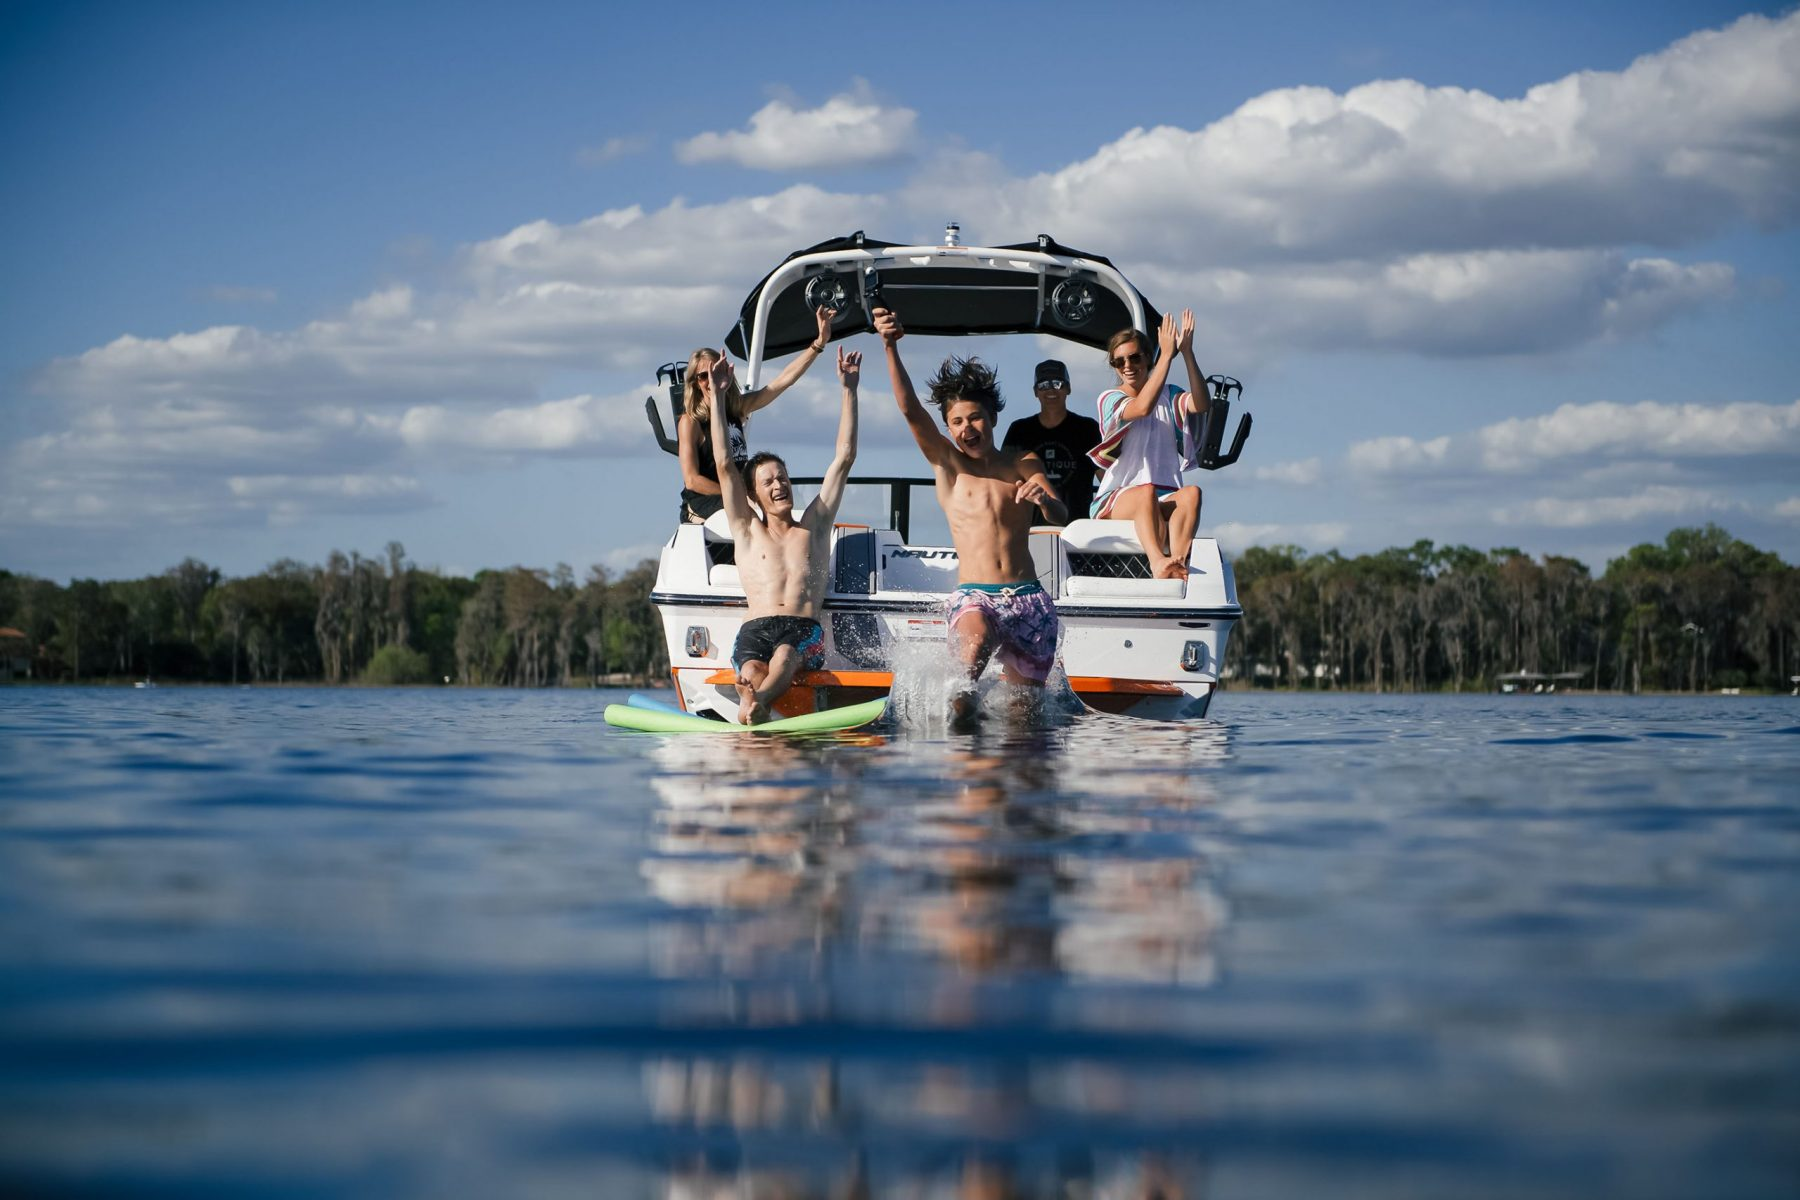 Family Time on the 2021 Nautique GS24 Wake Boat